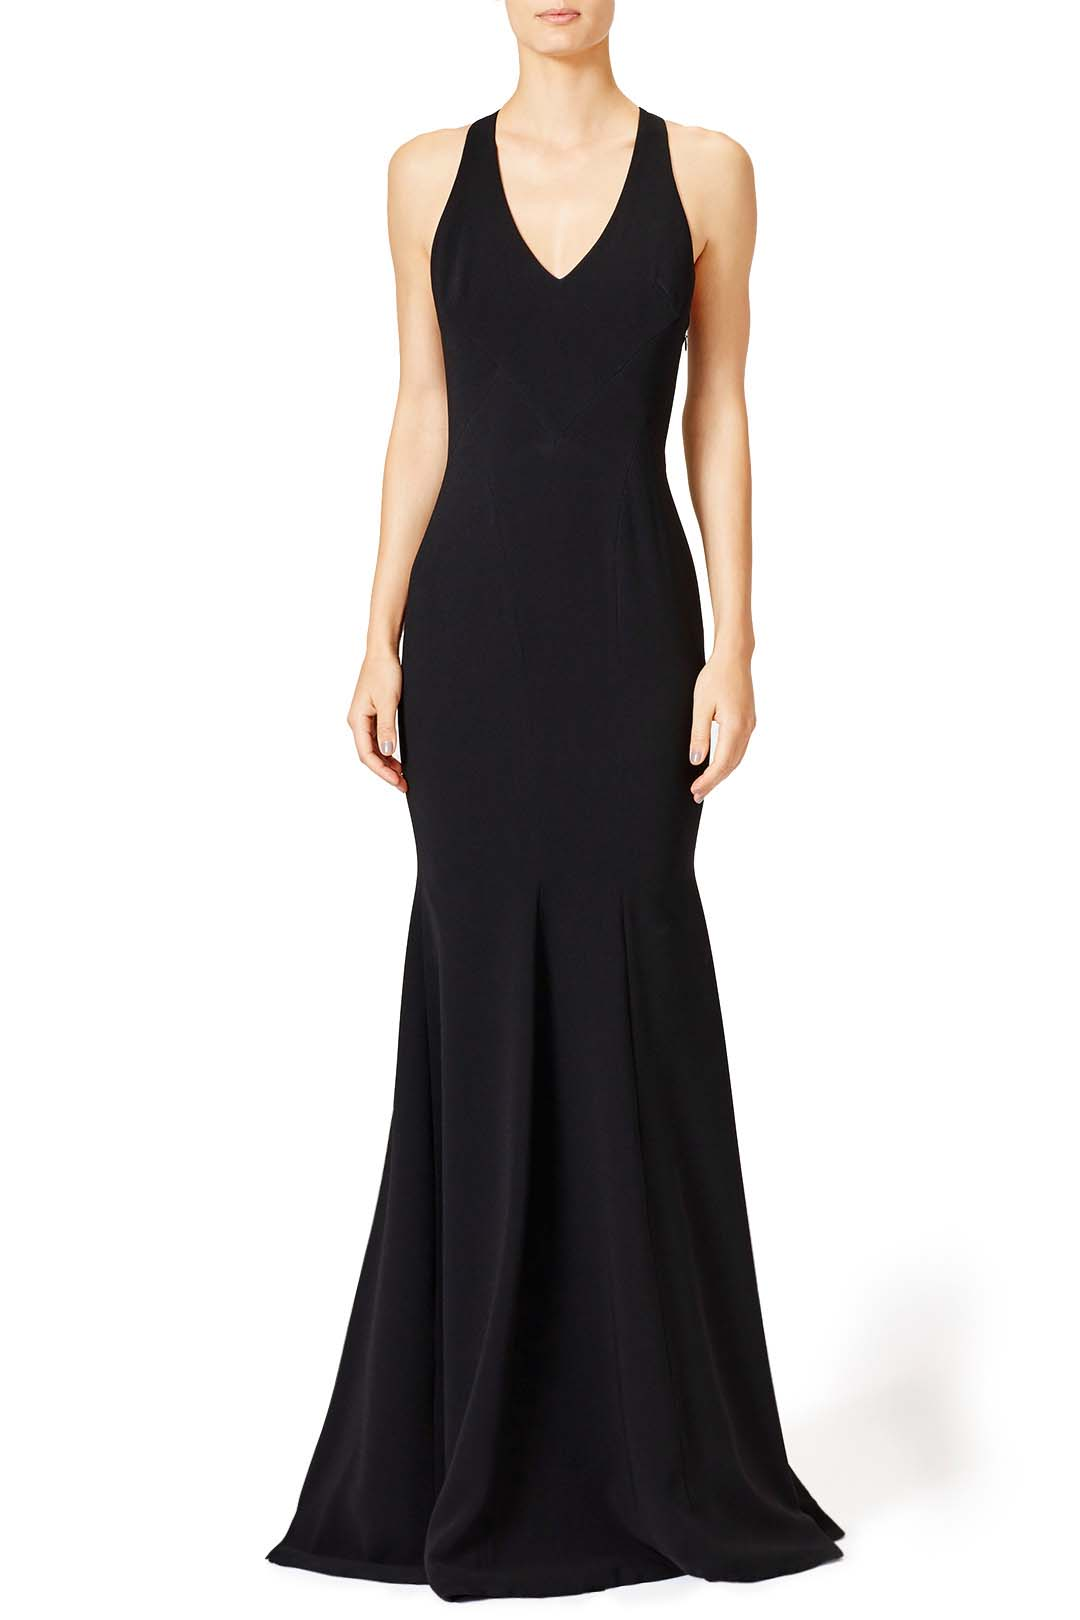 rent the runway black masquerade dress